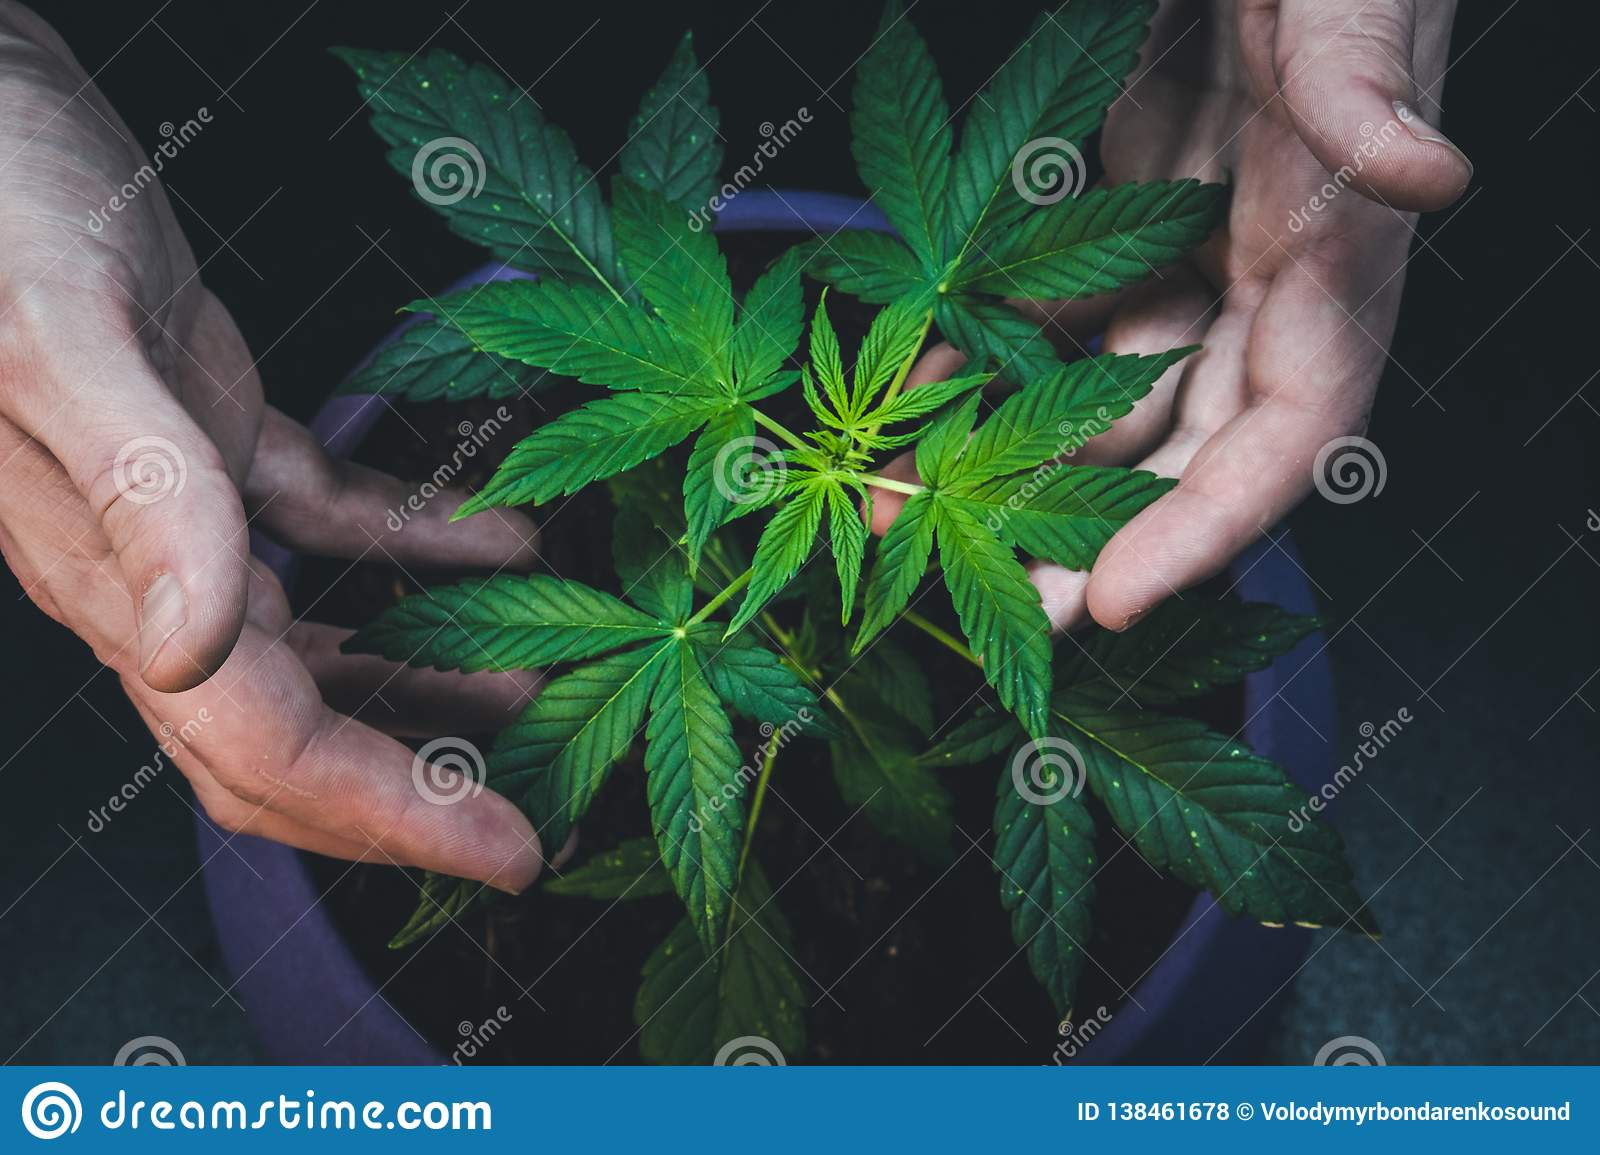 The man is holding leaves of medical marijuana plant. Cannabis growing indoor